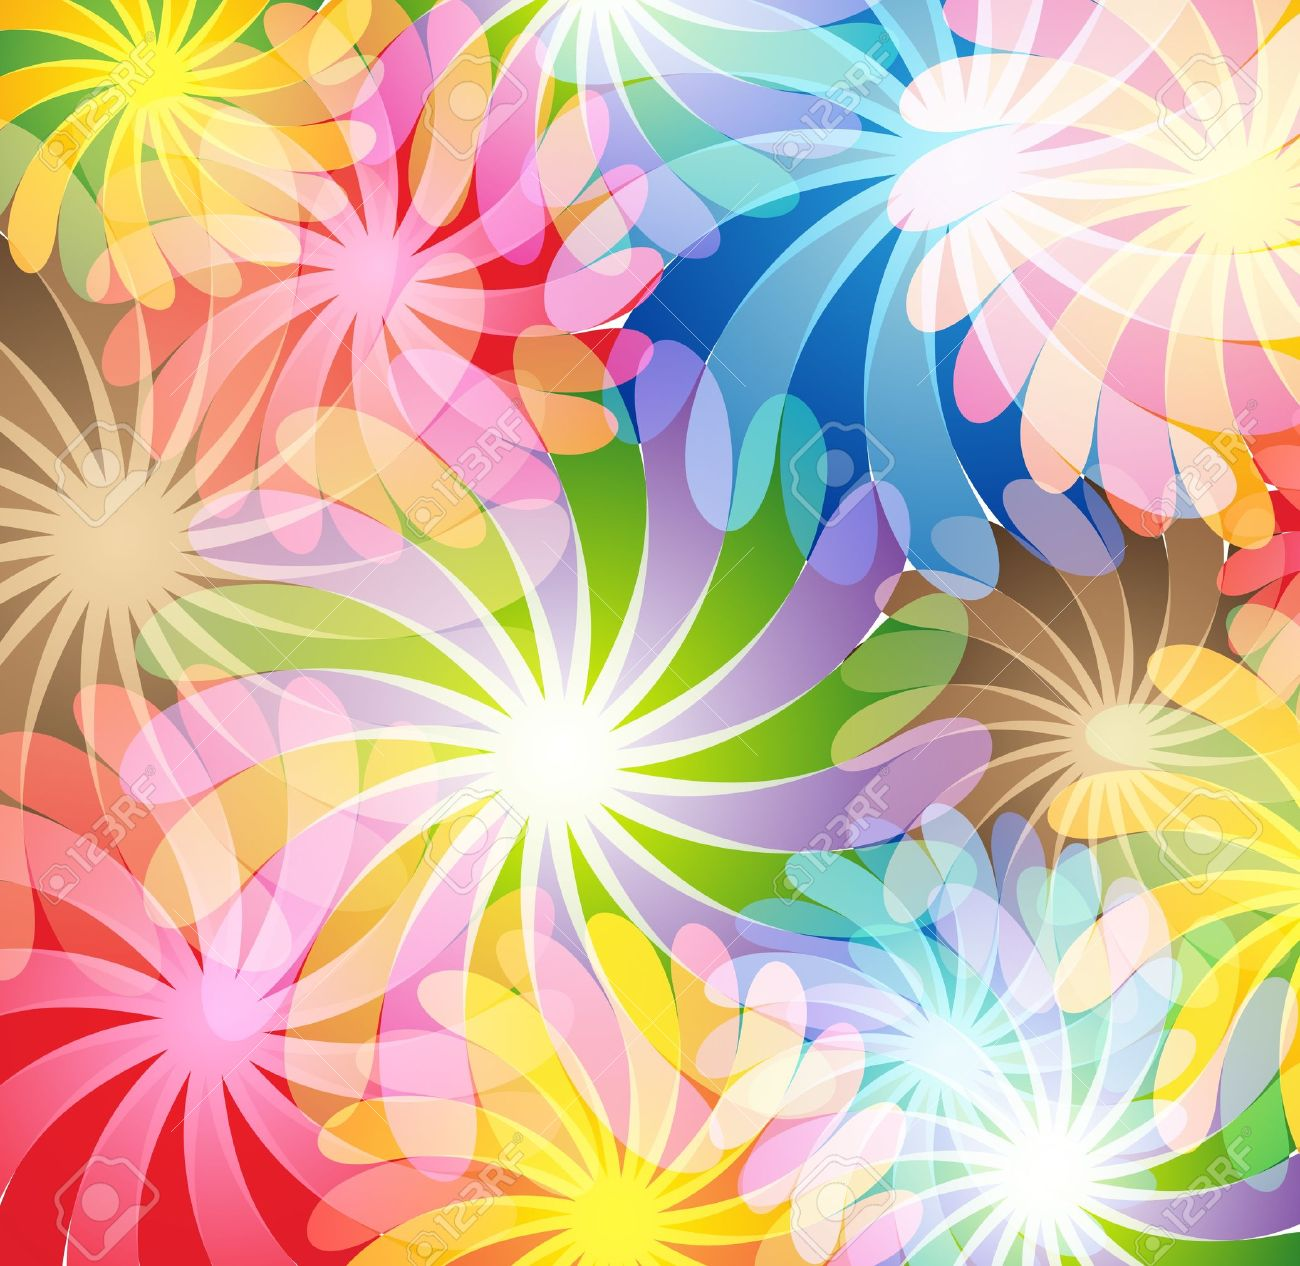 Bright transparent flowers Abstract background - 12828623